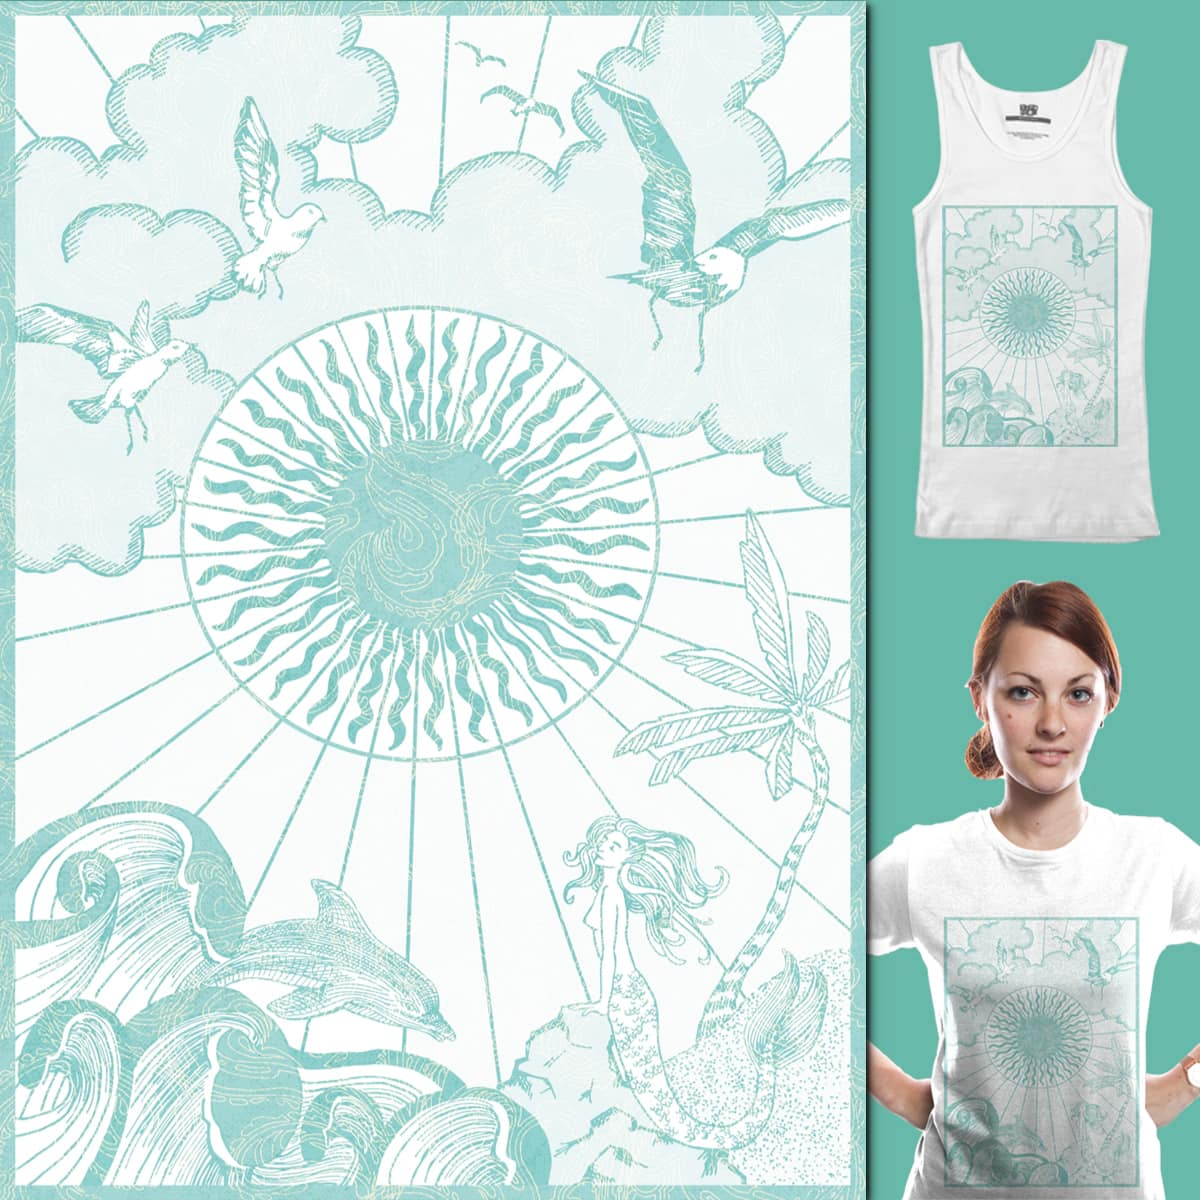 Summer Sun by Mollybu on Threadless